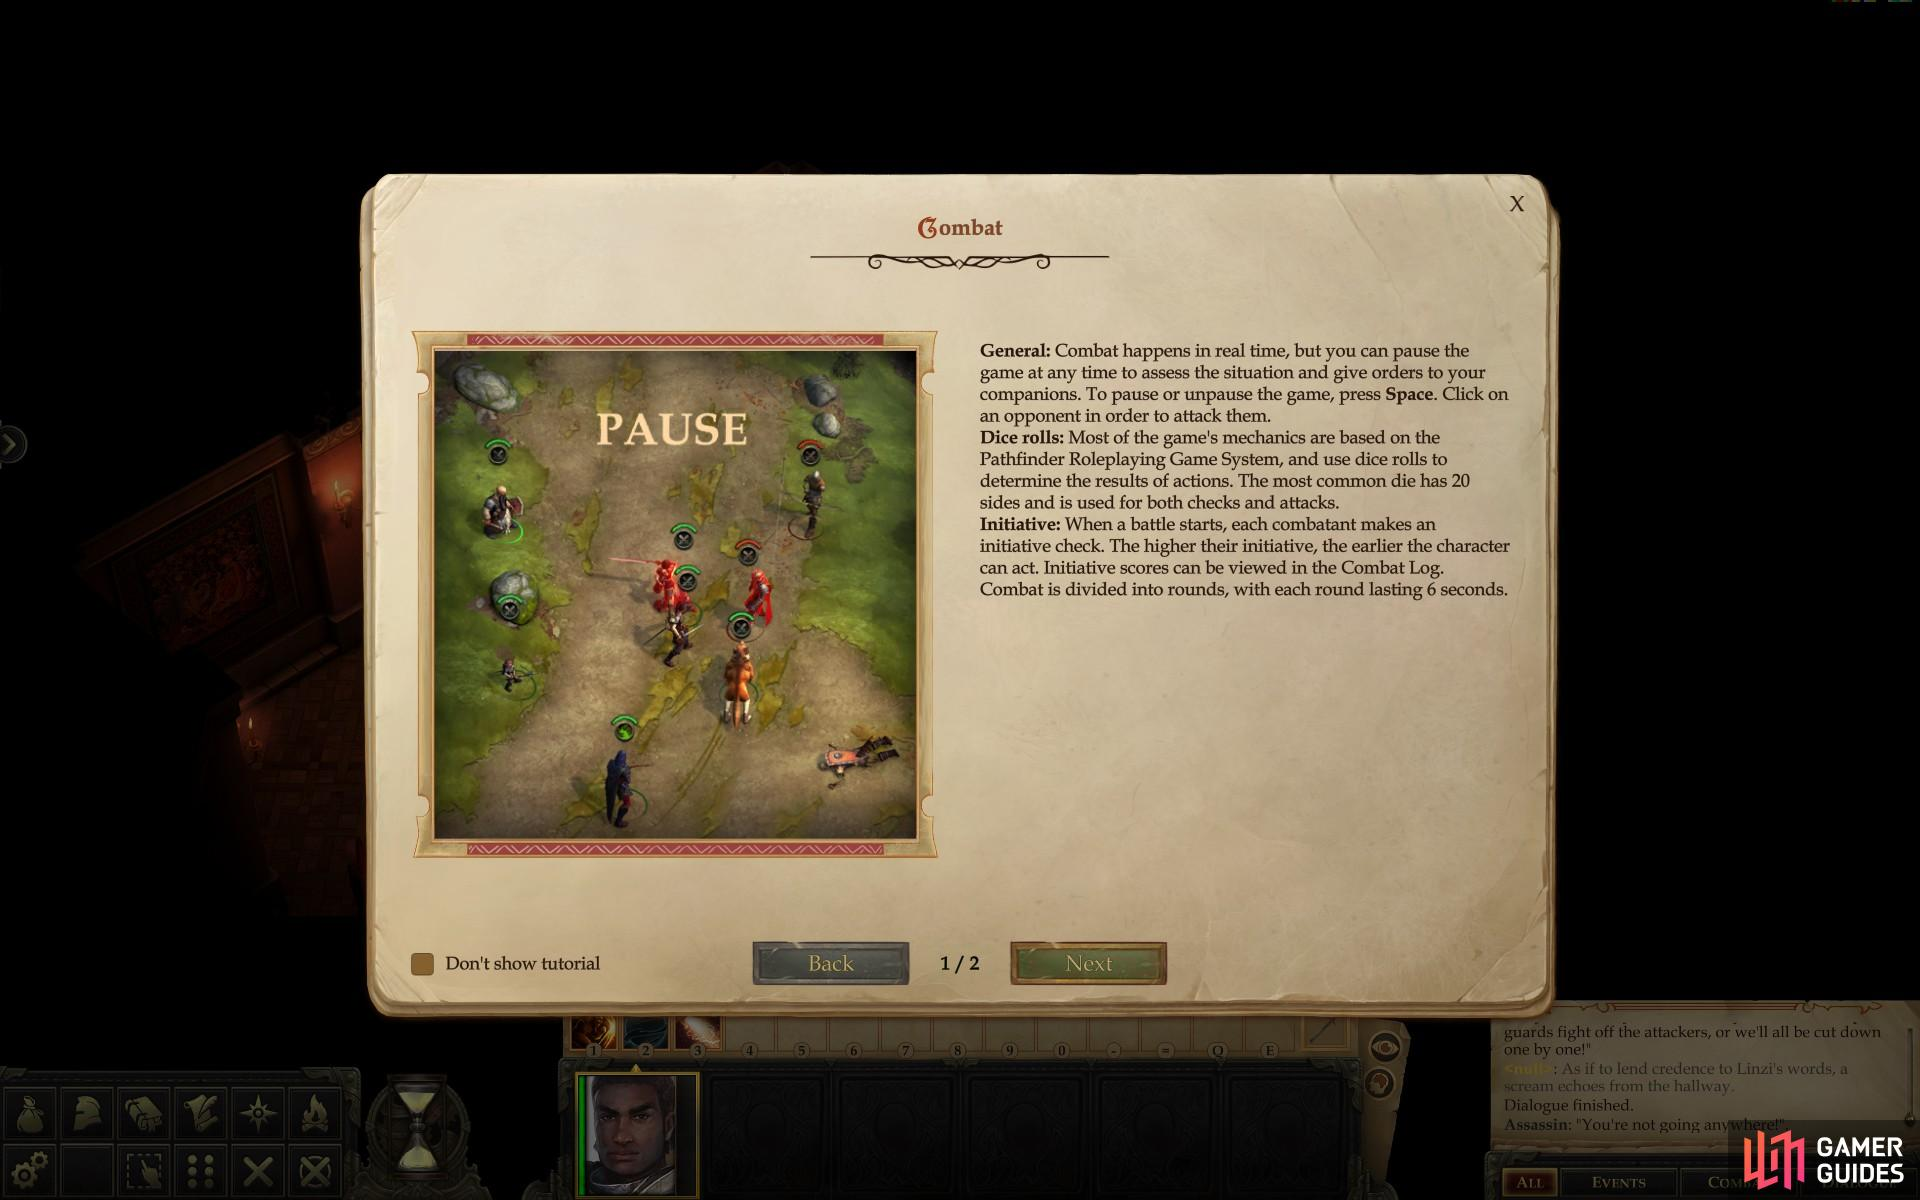 Even though combat is in real time, you can pause and unpause the game